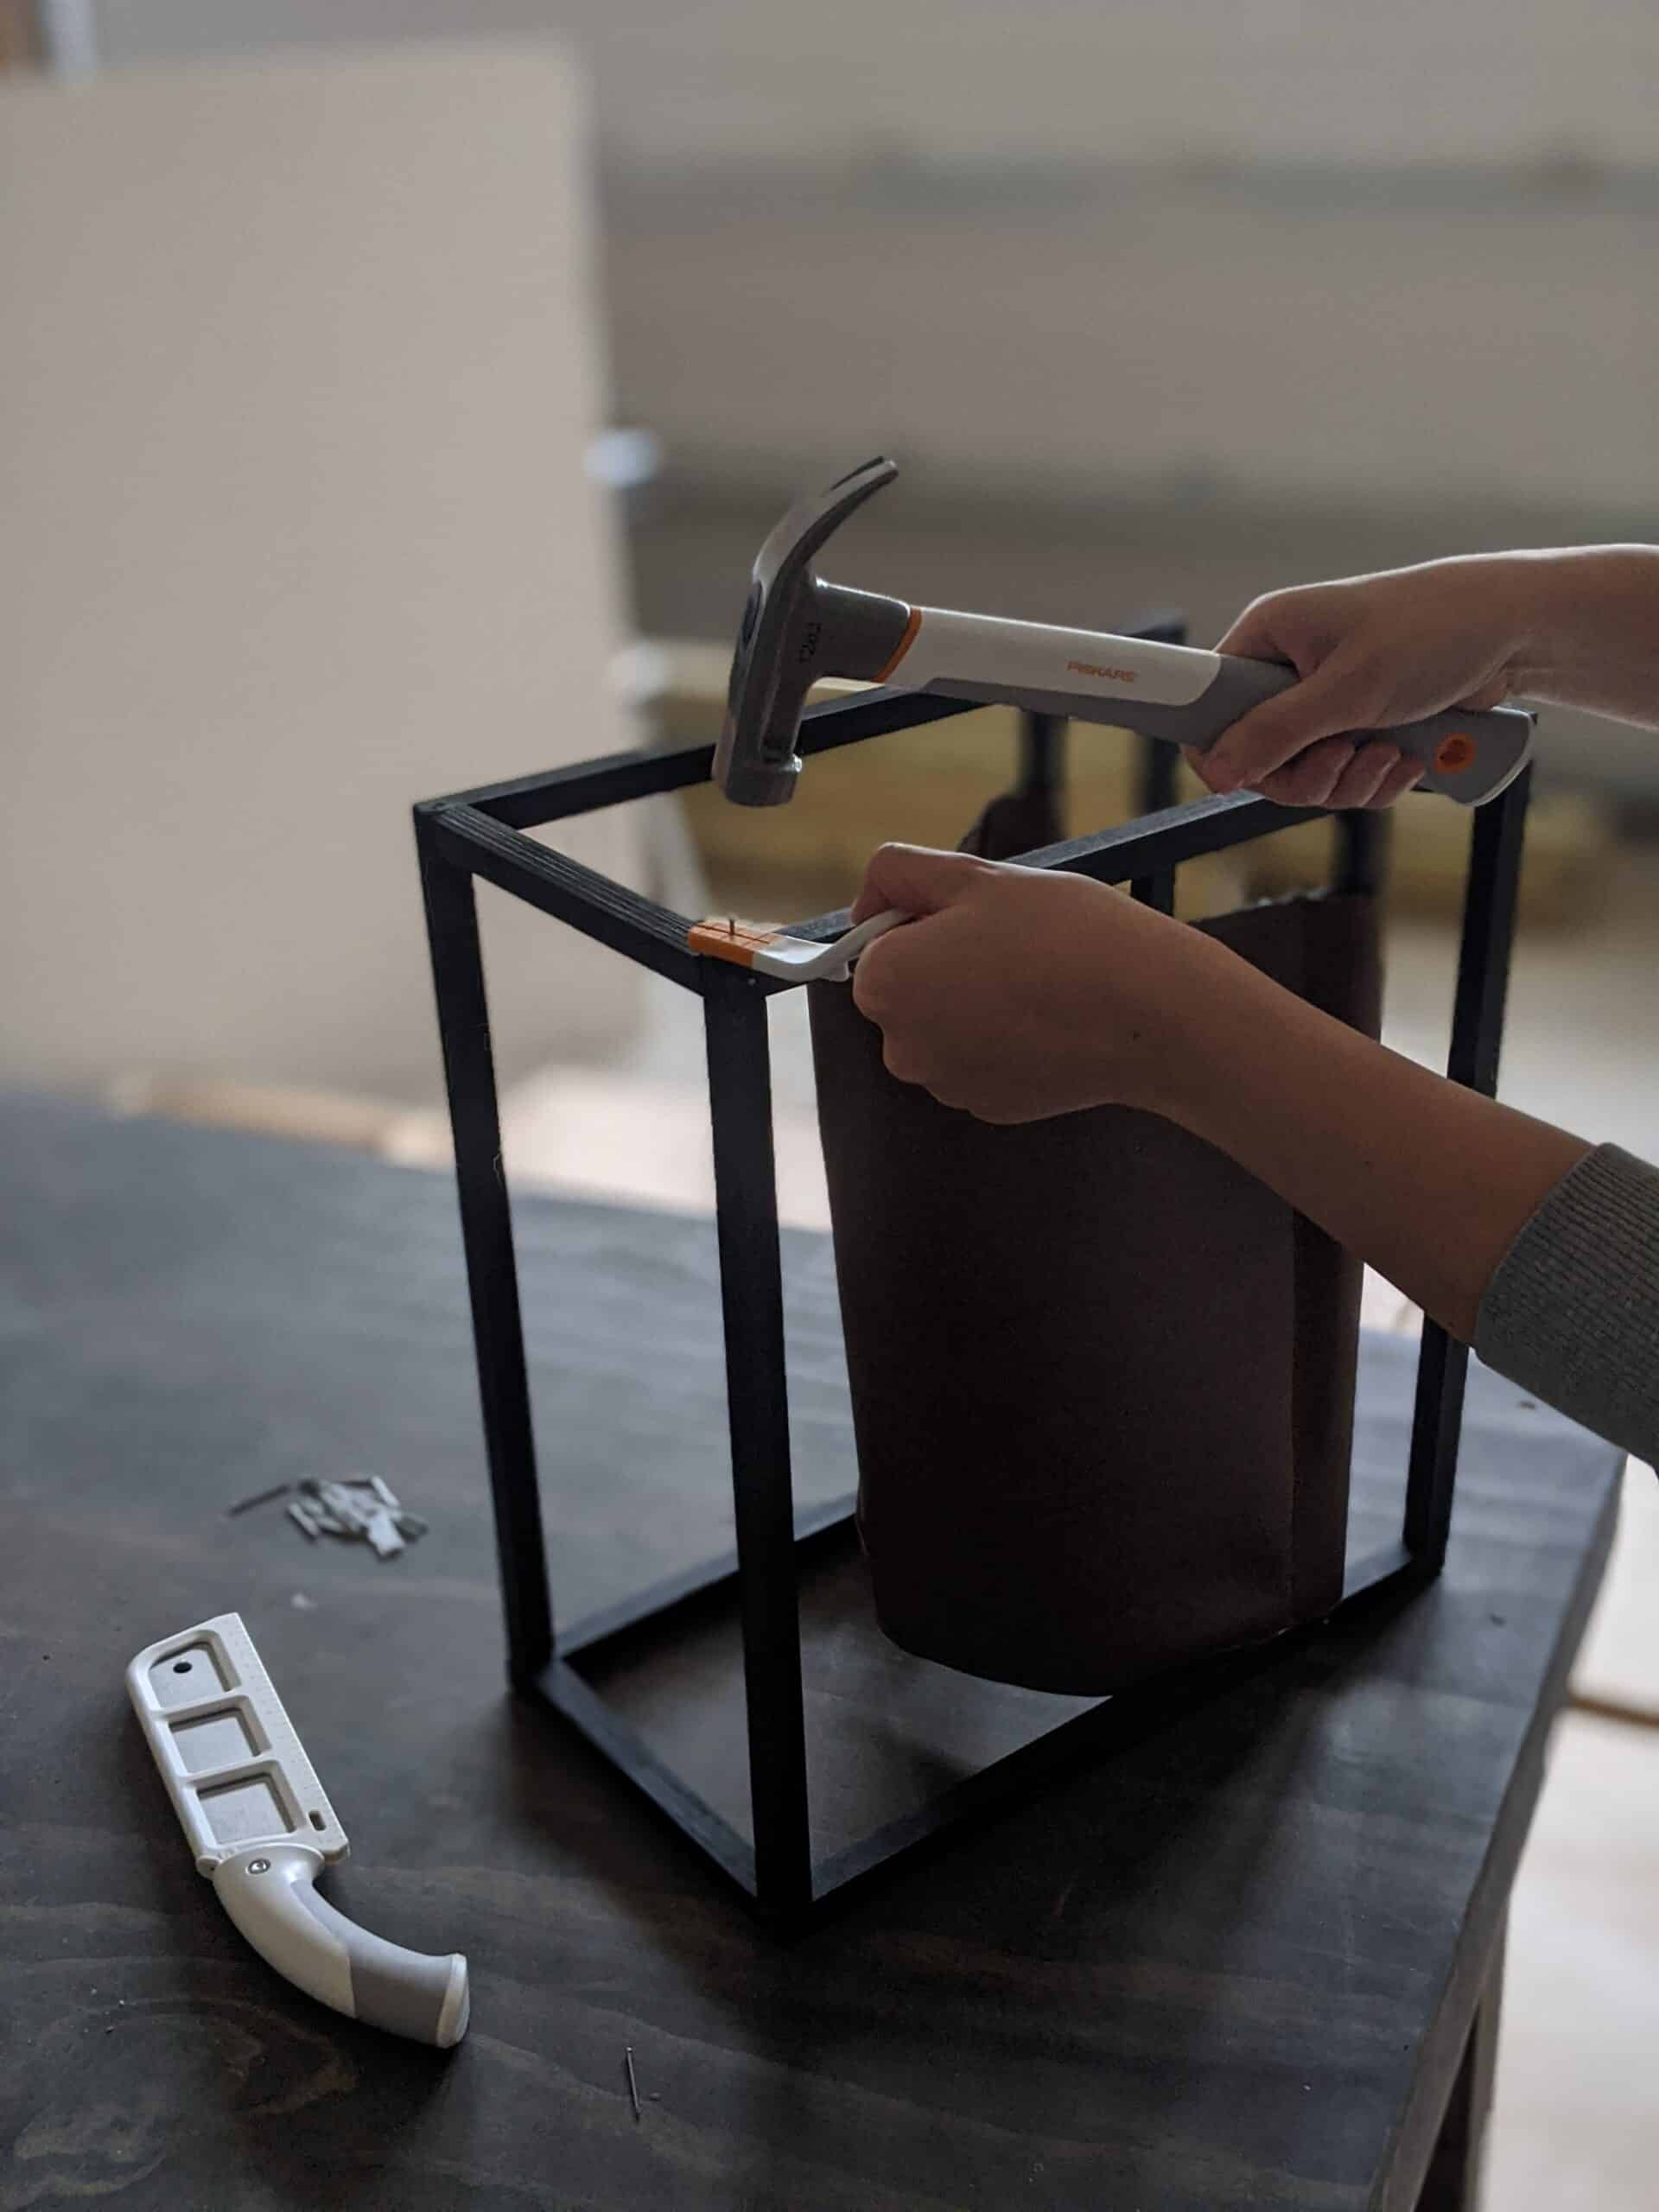 assembling leather magazine holder using nails and hammer